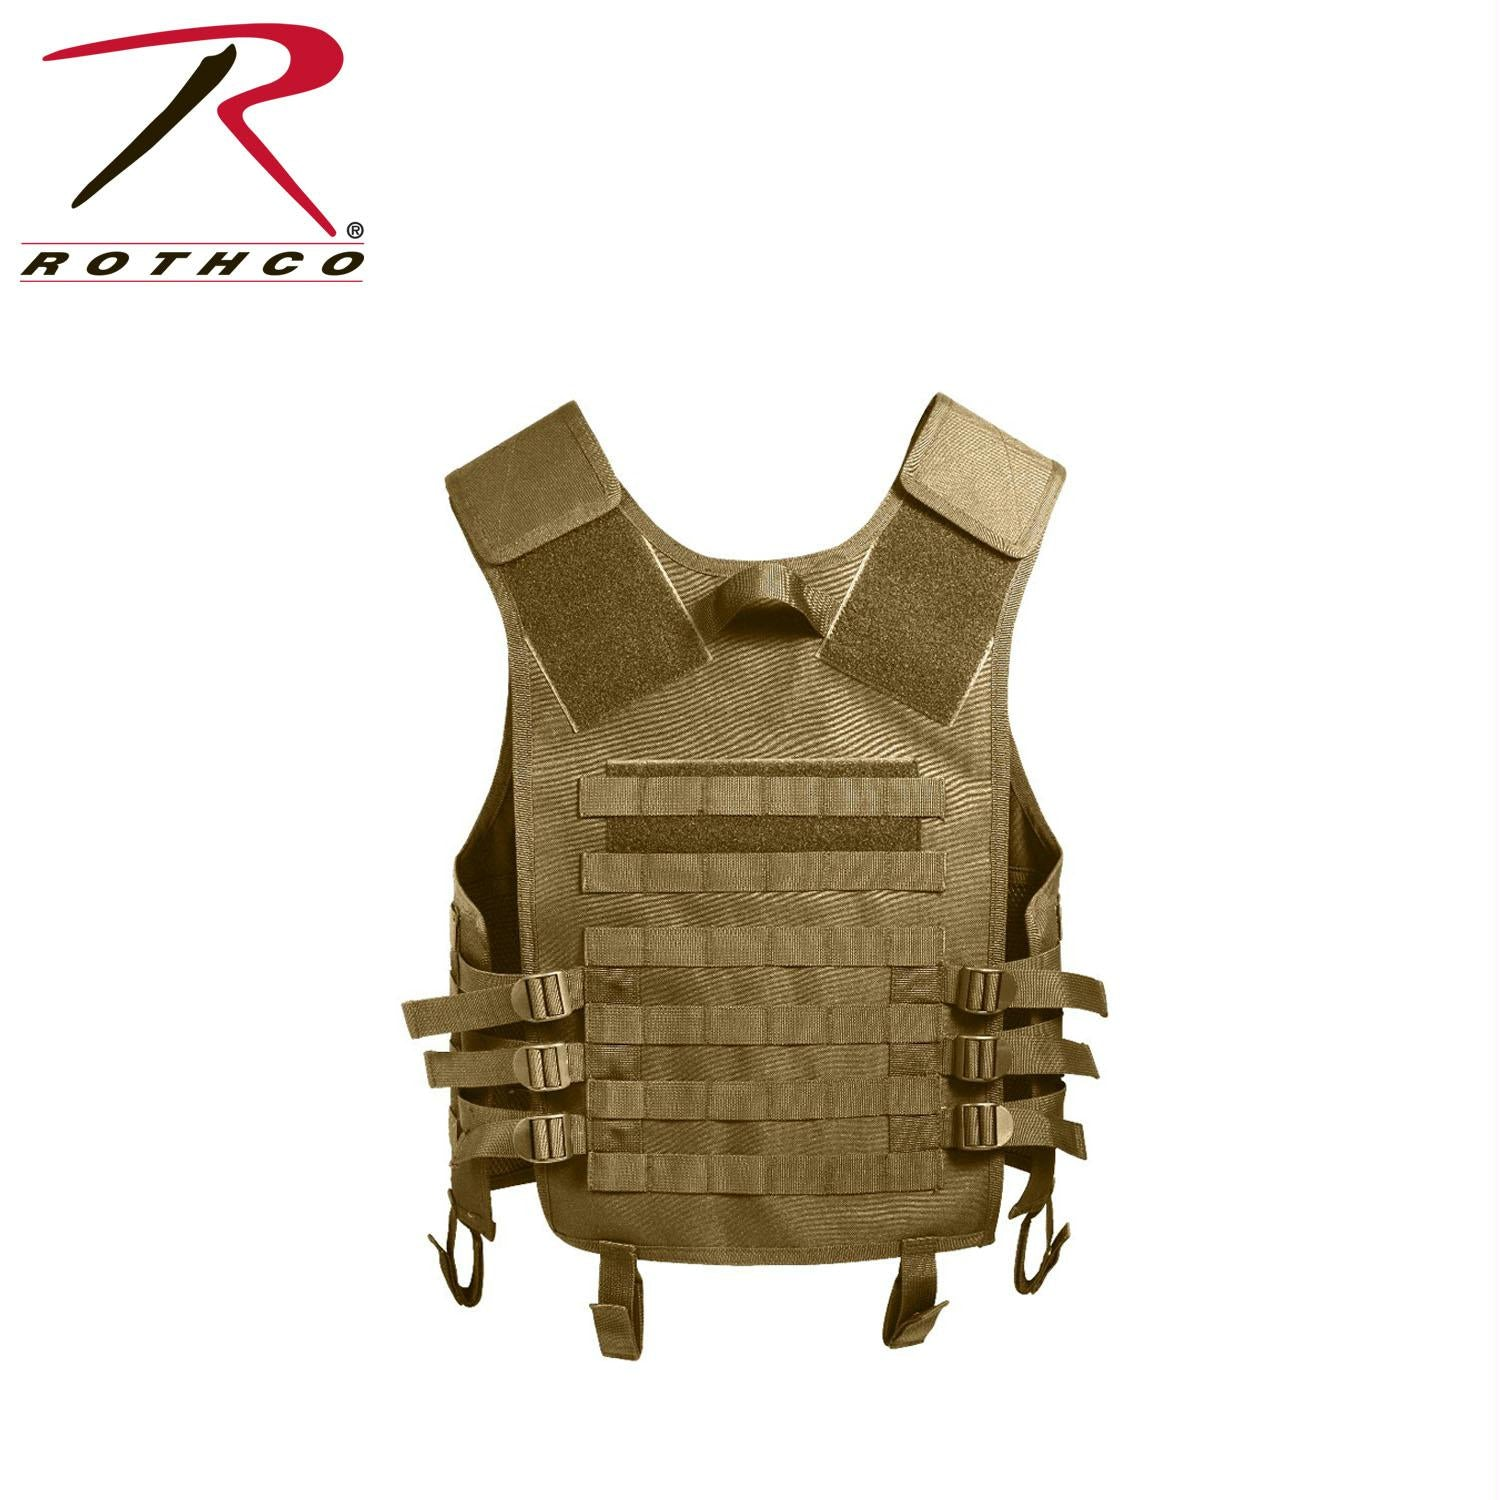 Rothco MOLLE Modular Vest - Coyote Brown